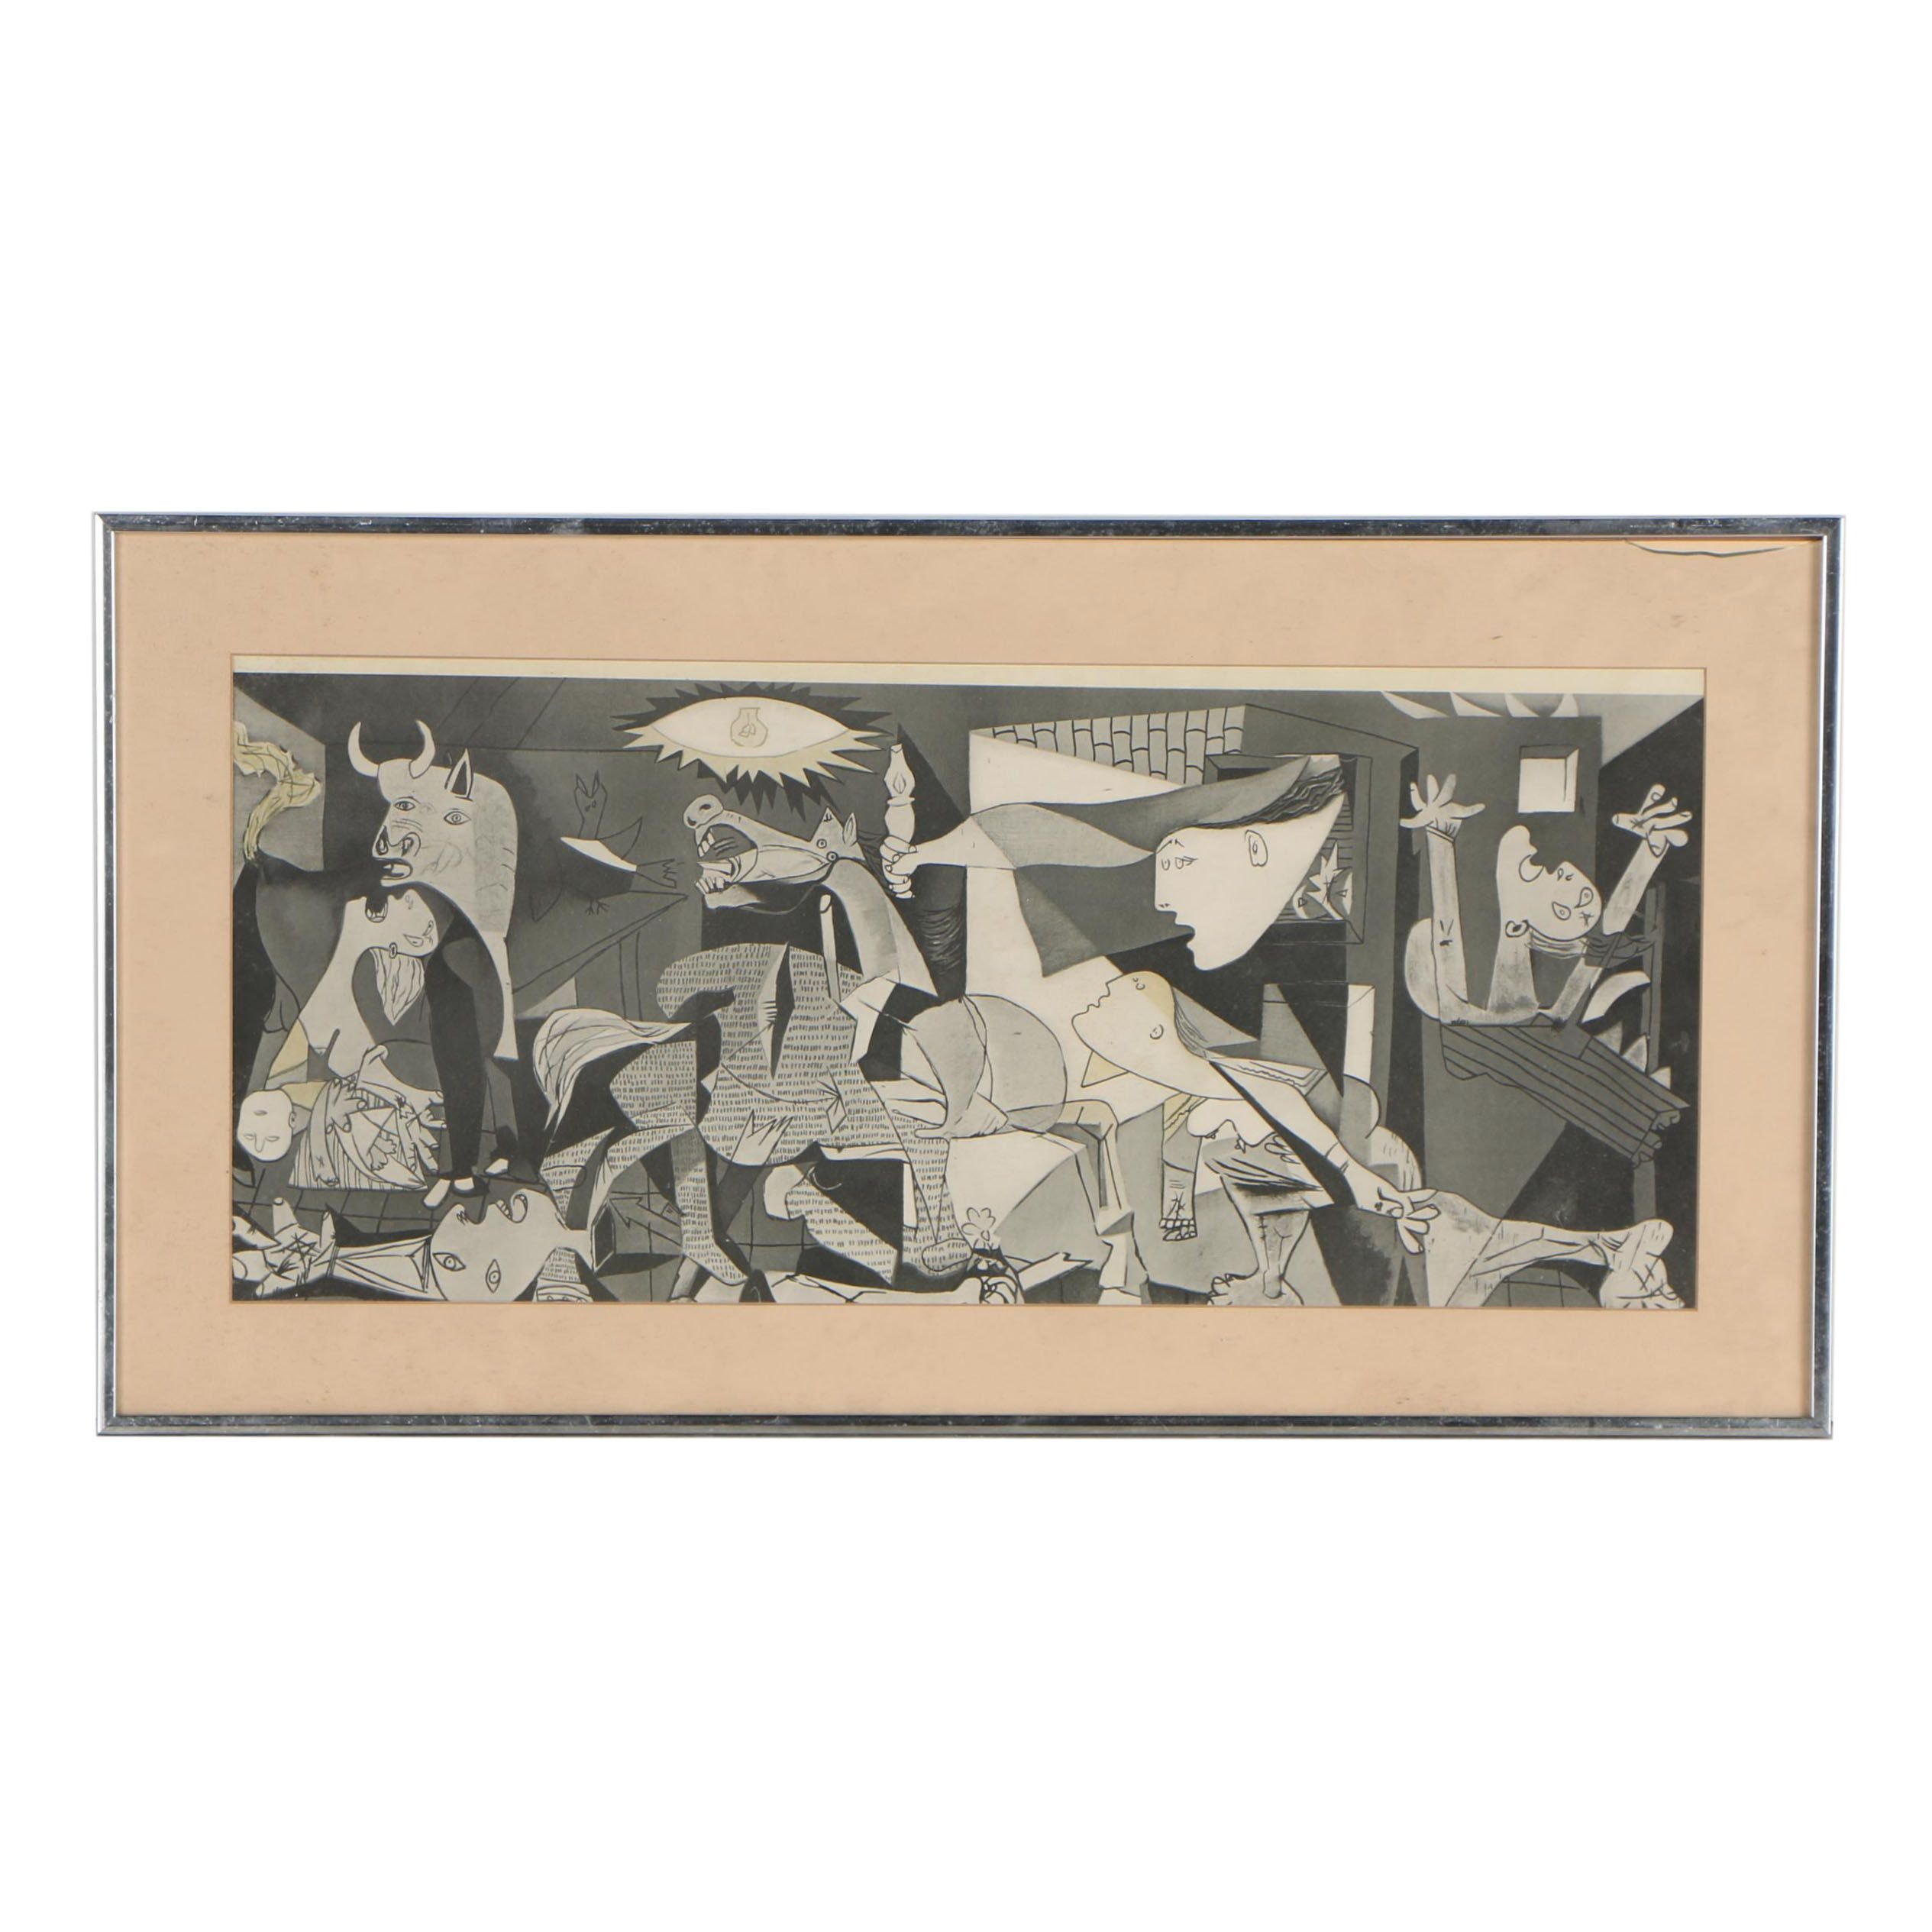 "Late 20th Century Offset Lithograph after Pablo Picasso ""Guernica"""